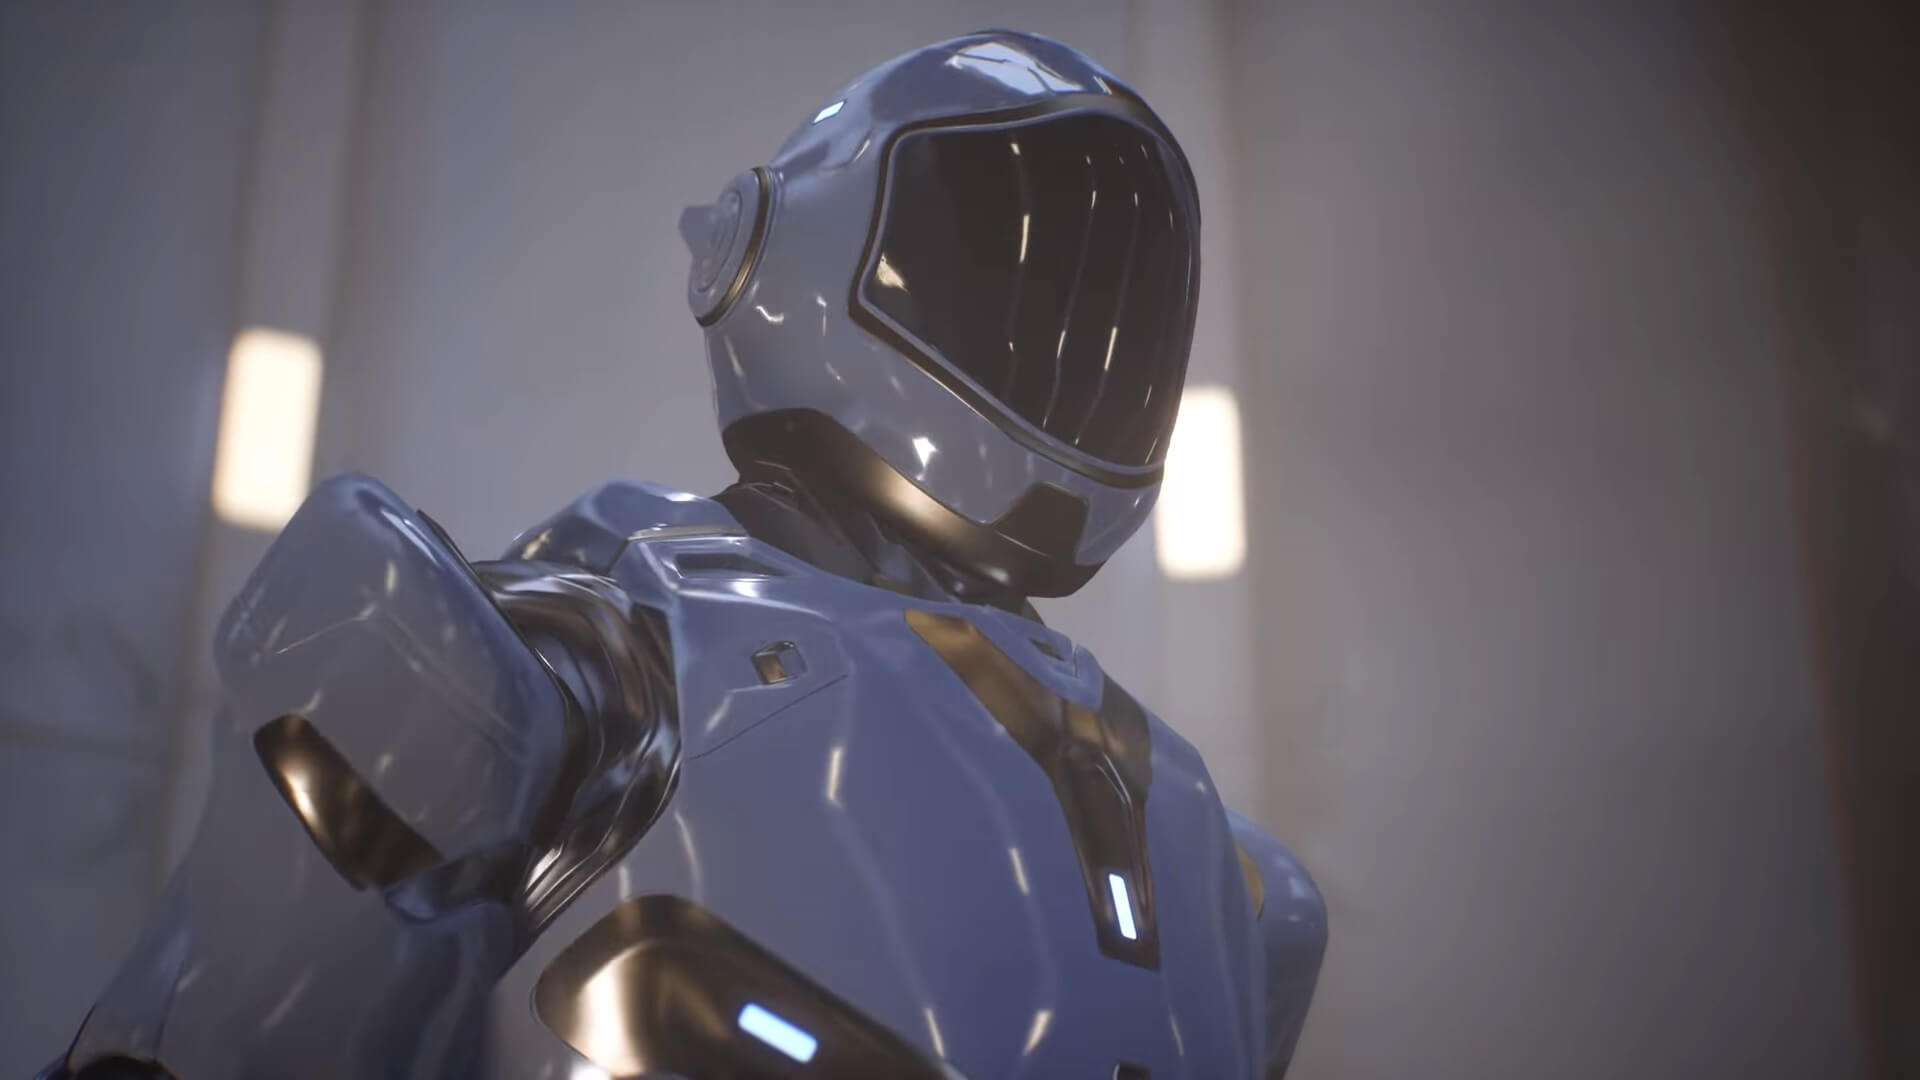 NVIDIA aims to remove TAA blurring and ghosting artifacts with adaptive ray tracing in games